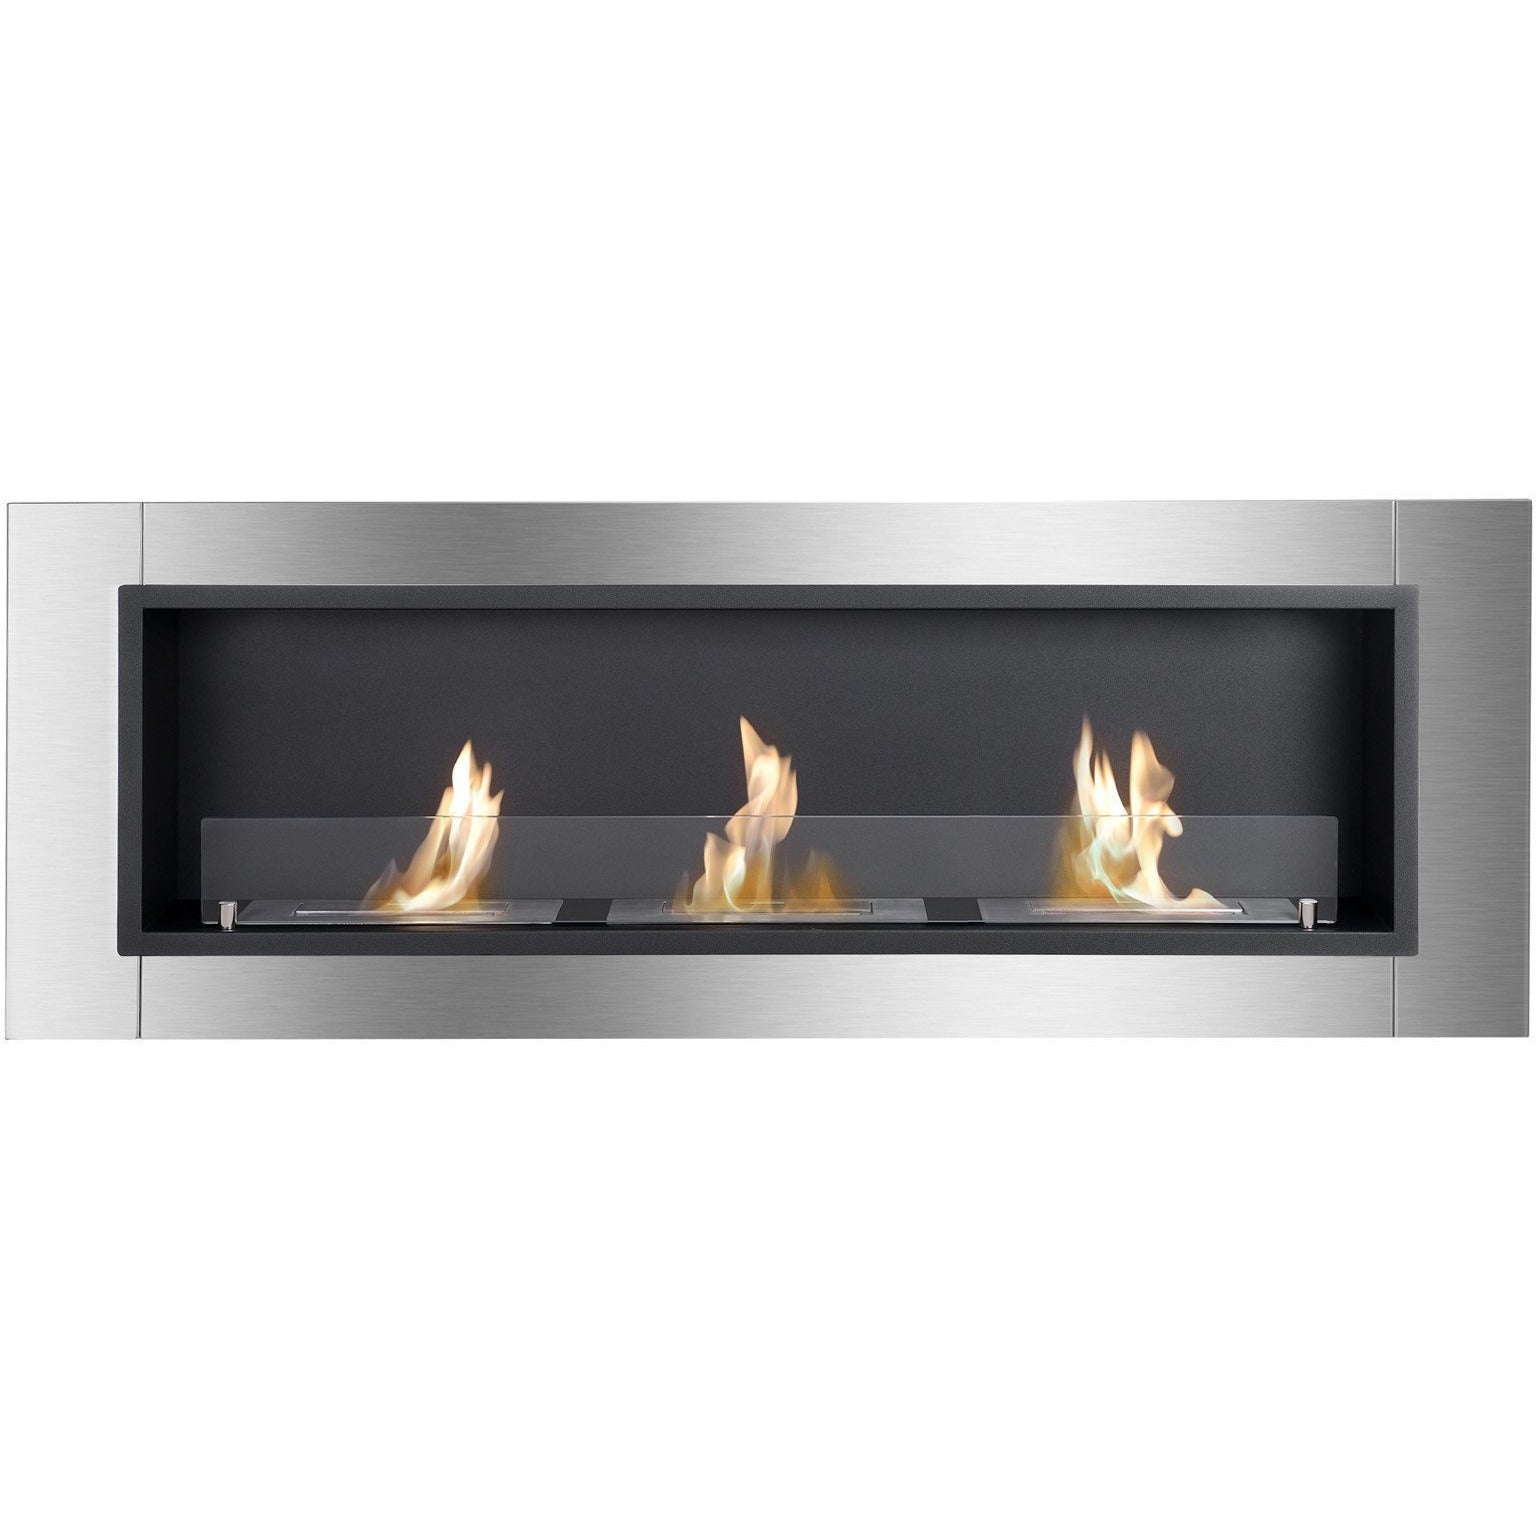 "Ethanol Fireplace - Ignis Ardella - 55"" Built-in/Wall Mounted Ethanol Fireplace (WMF-0222)"